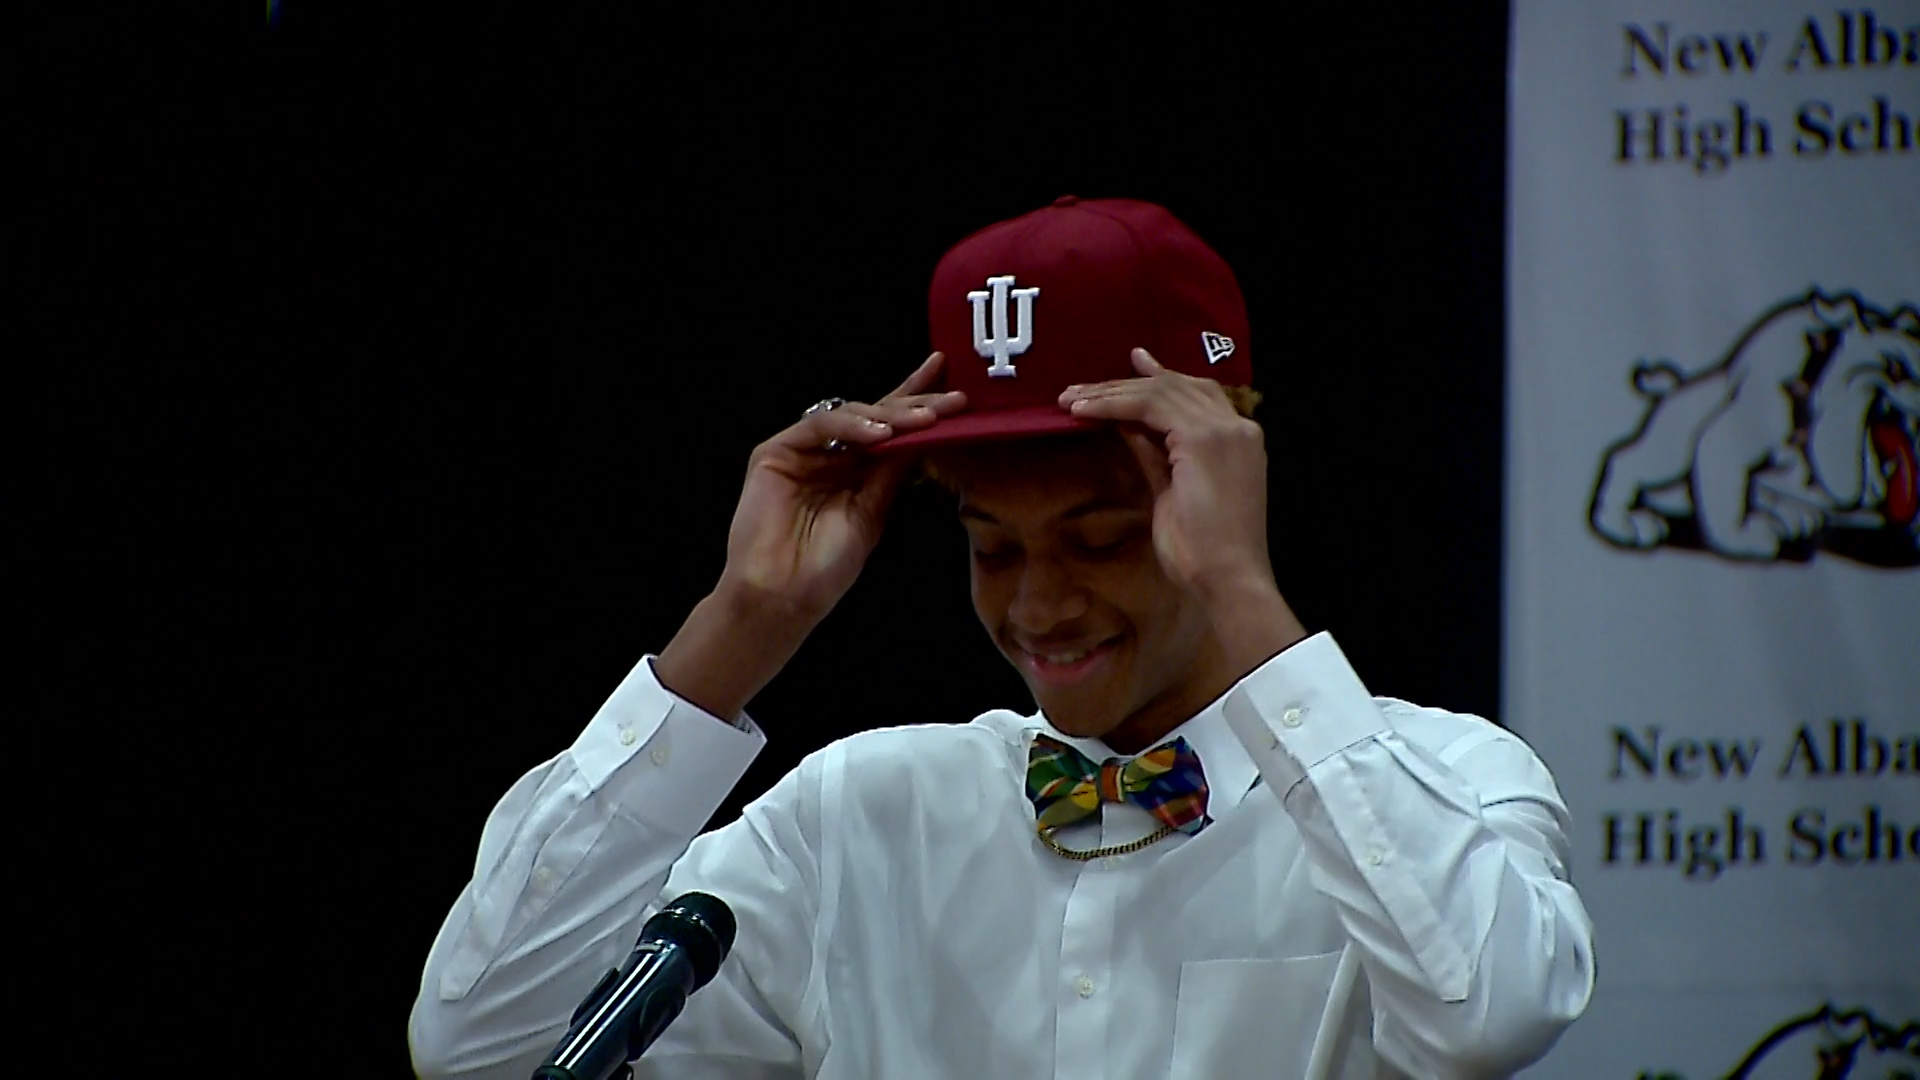 LANGFORD CHOOSES IU_1525146166818.jpg.jpg